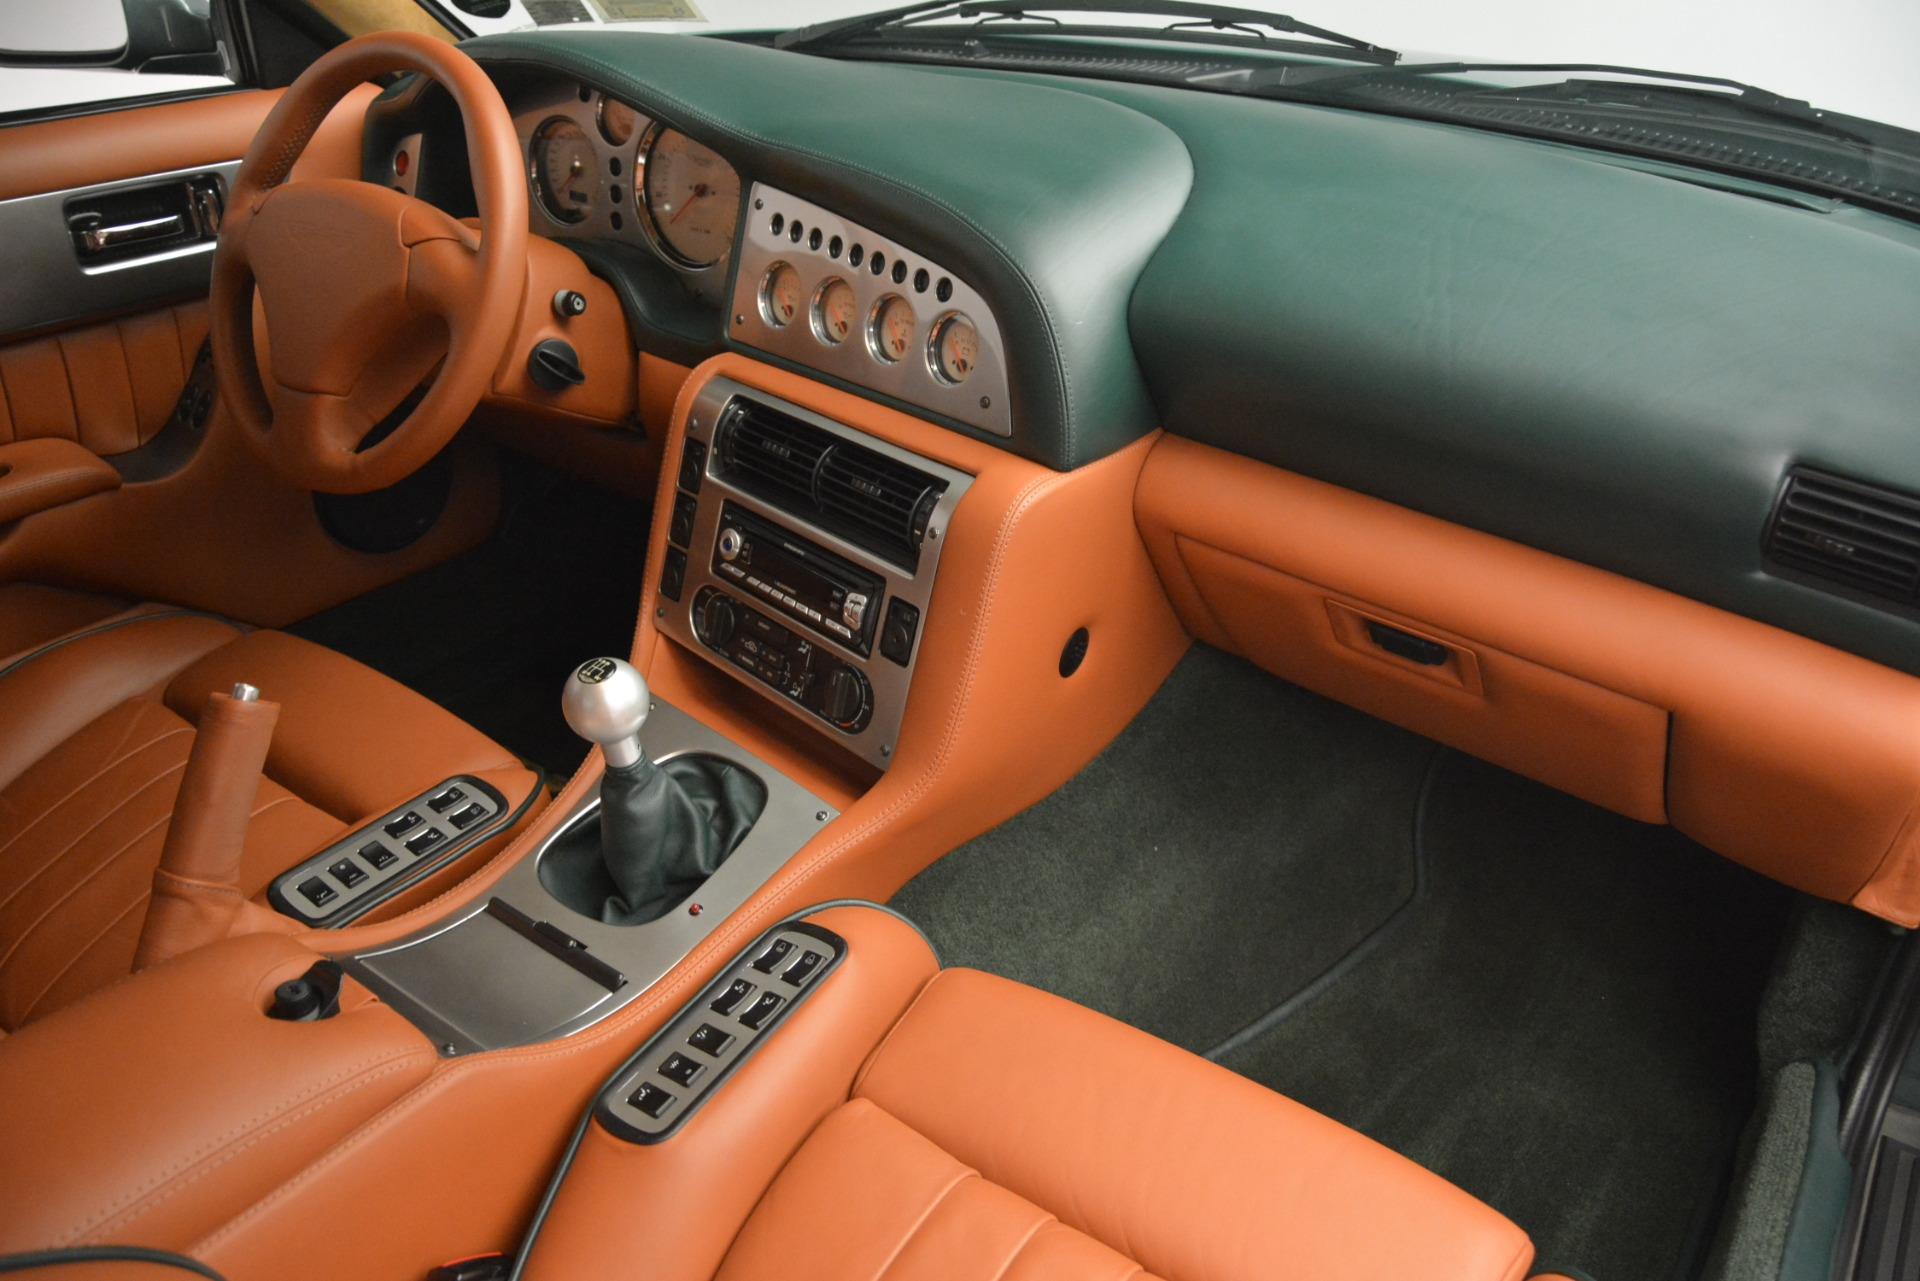 Used 1999 Aston Martin V8 Vantage Le Mans V600 Coupe For Sale In Greenwich, CT 2789_p28